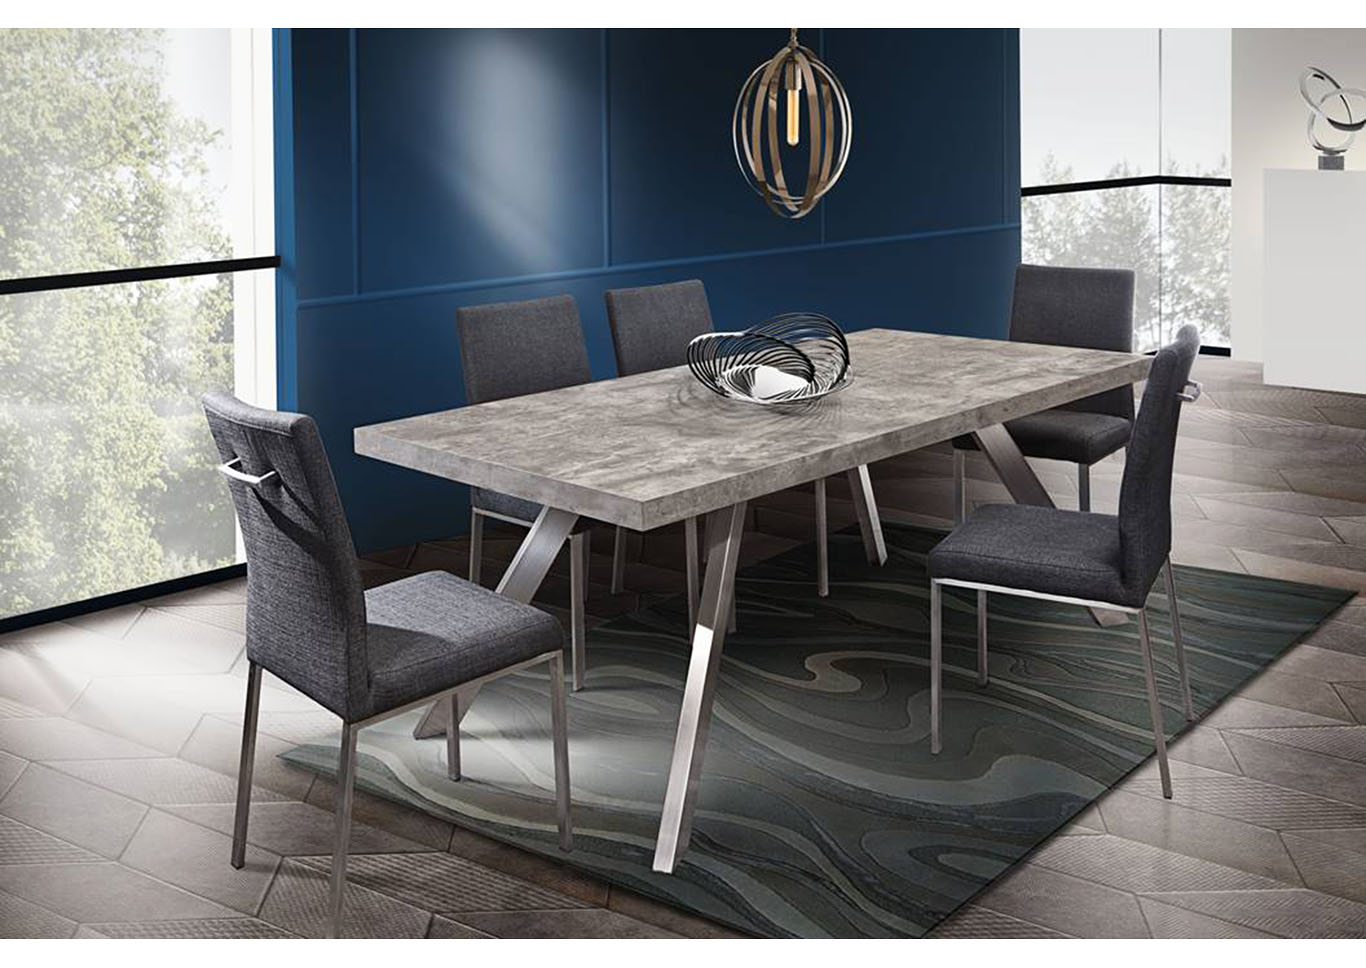 Carrera Faux Concrete Finish Dining Table w/Brushed Stainless Steel Legs,Diamond Sofa